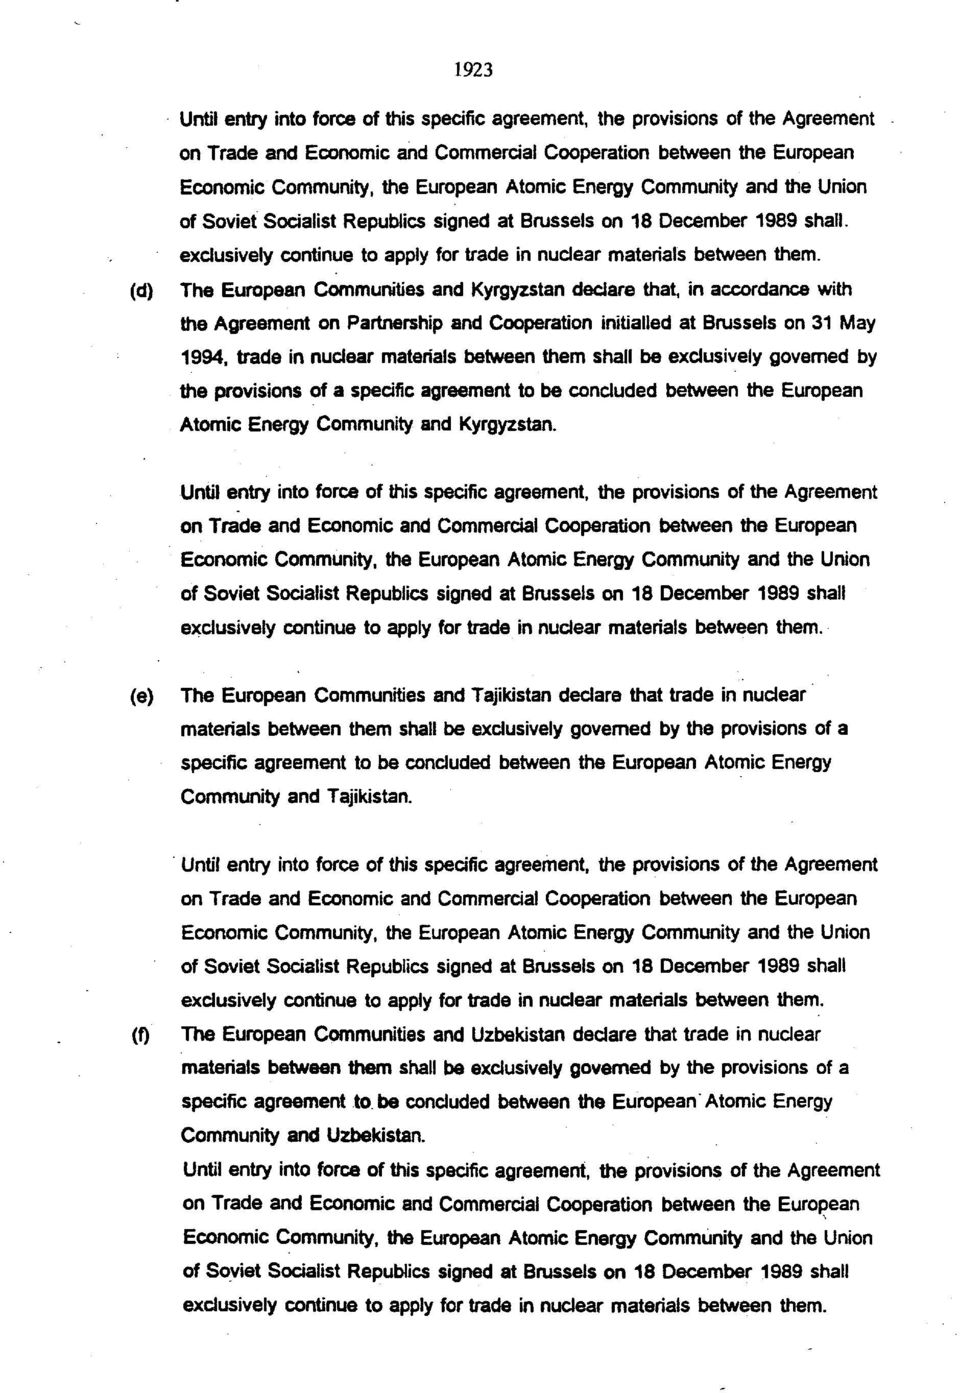 The European Communities and Kyrgyzstan declare that, in accordance with the Agreement on Partnership and Cooperation initialled at Brussels on 31 May 1994, trade in nuclear materials between them